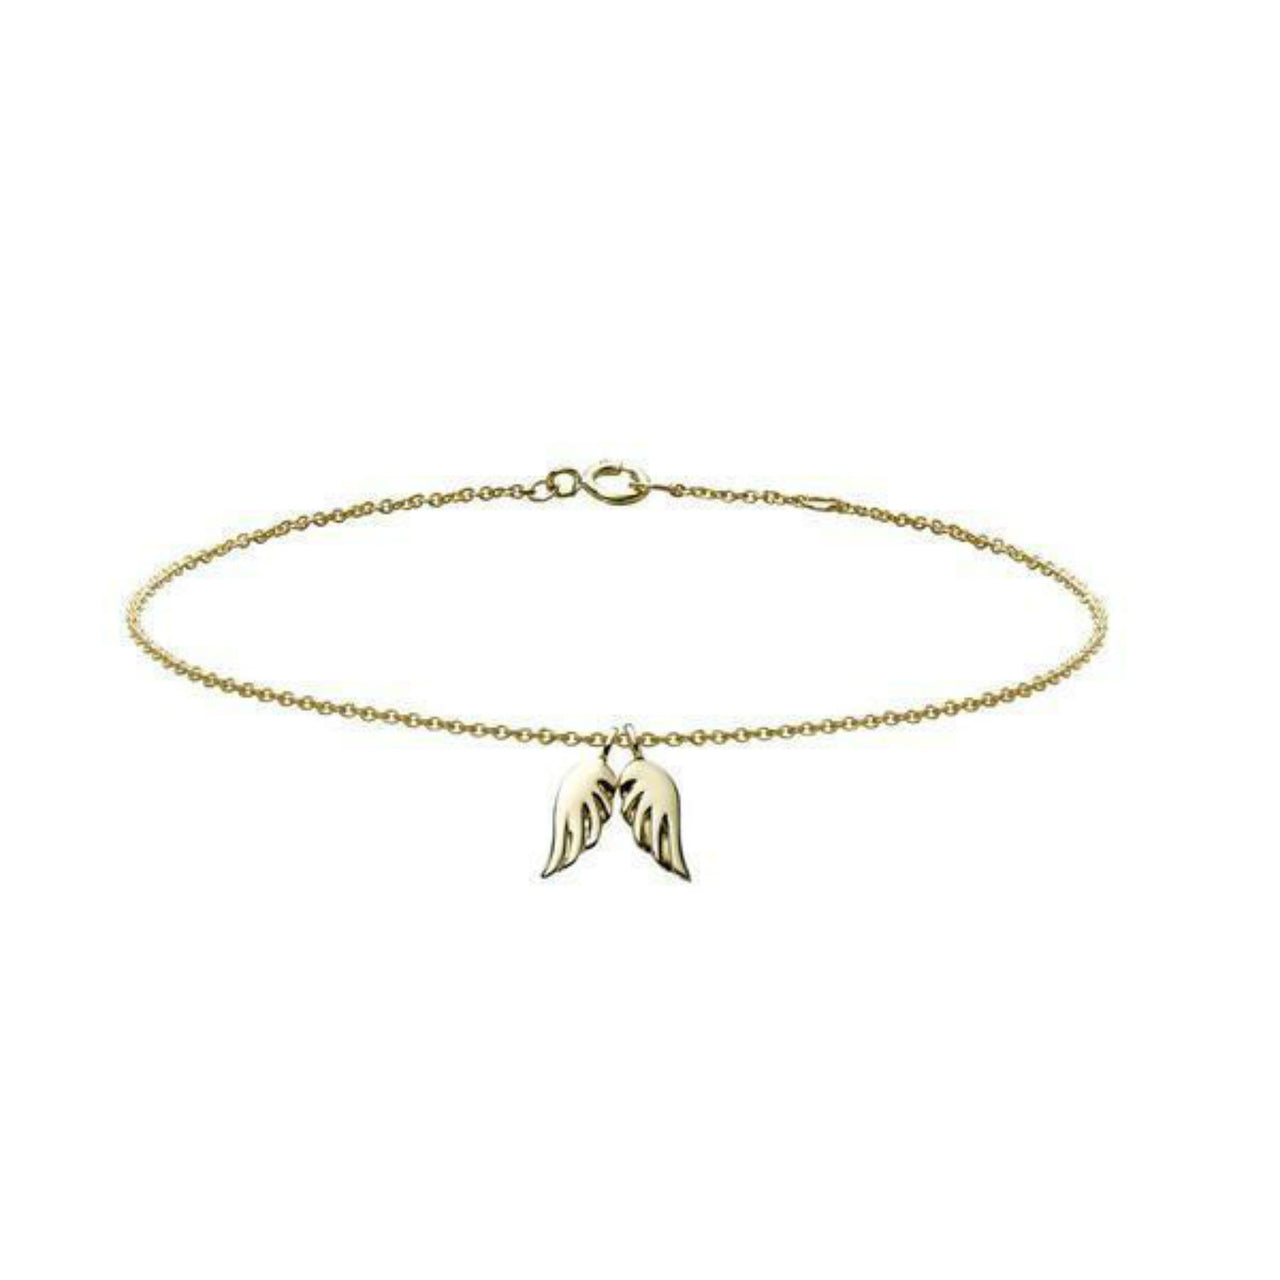 18k gold angel wings charm bracelet by Finn by Candice Pool Neistat